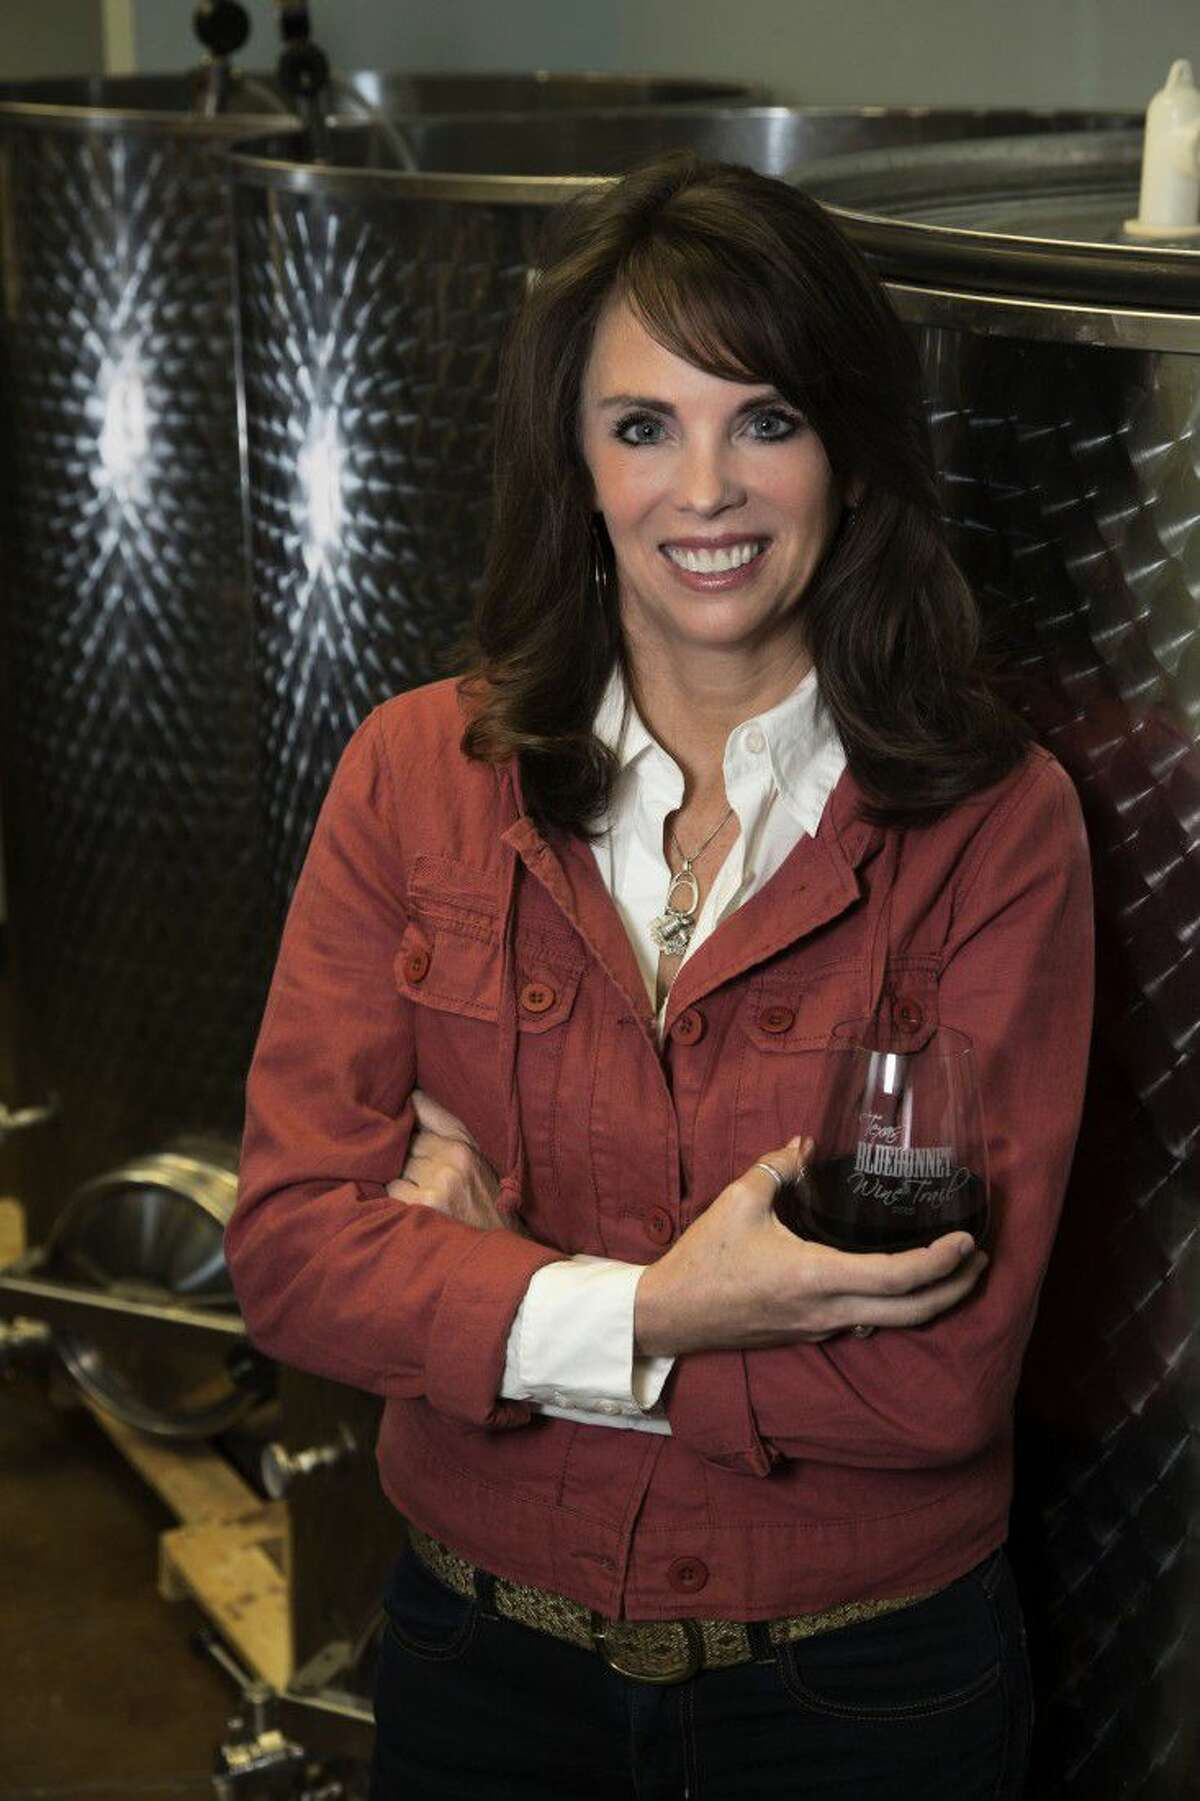 Wine maker and winery owner, Karla Nash, created the Cork This! Winery in Montgomery.